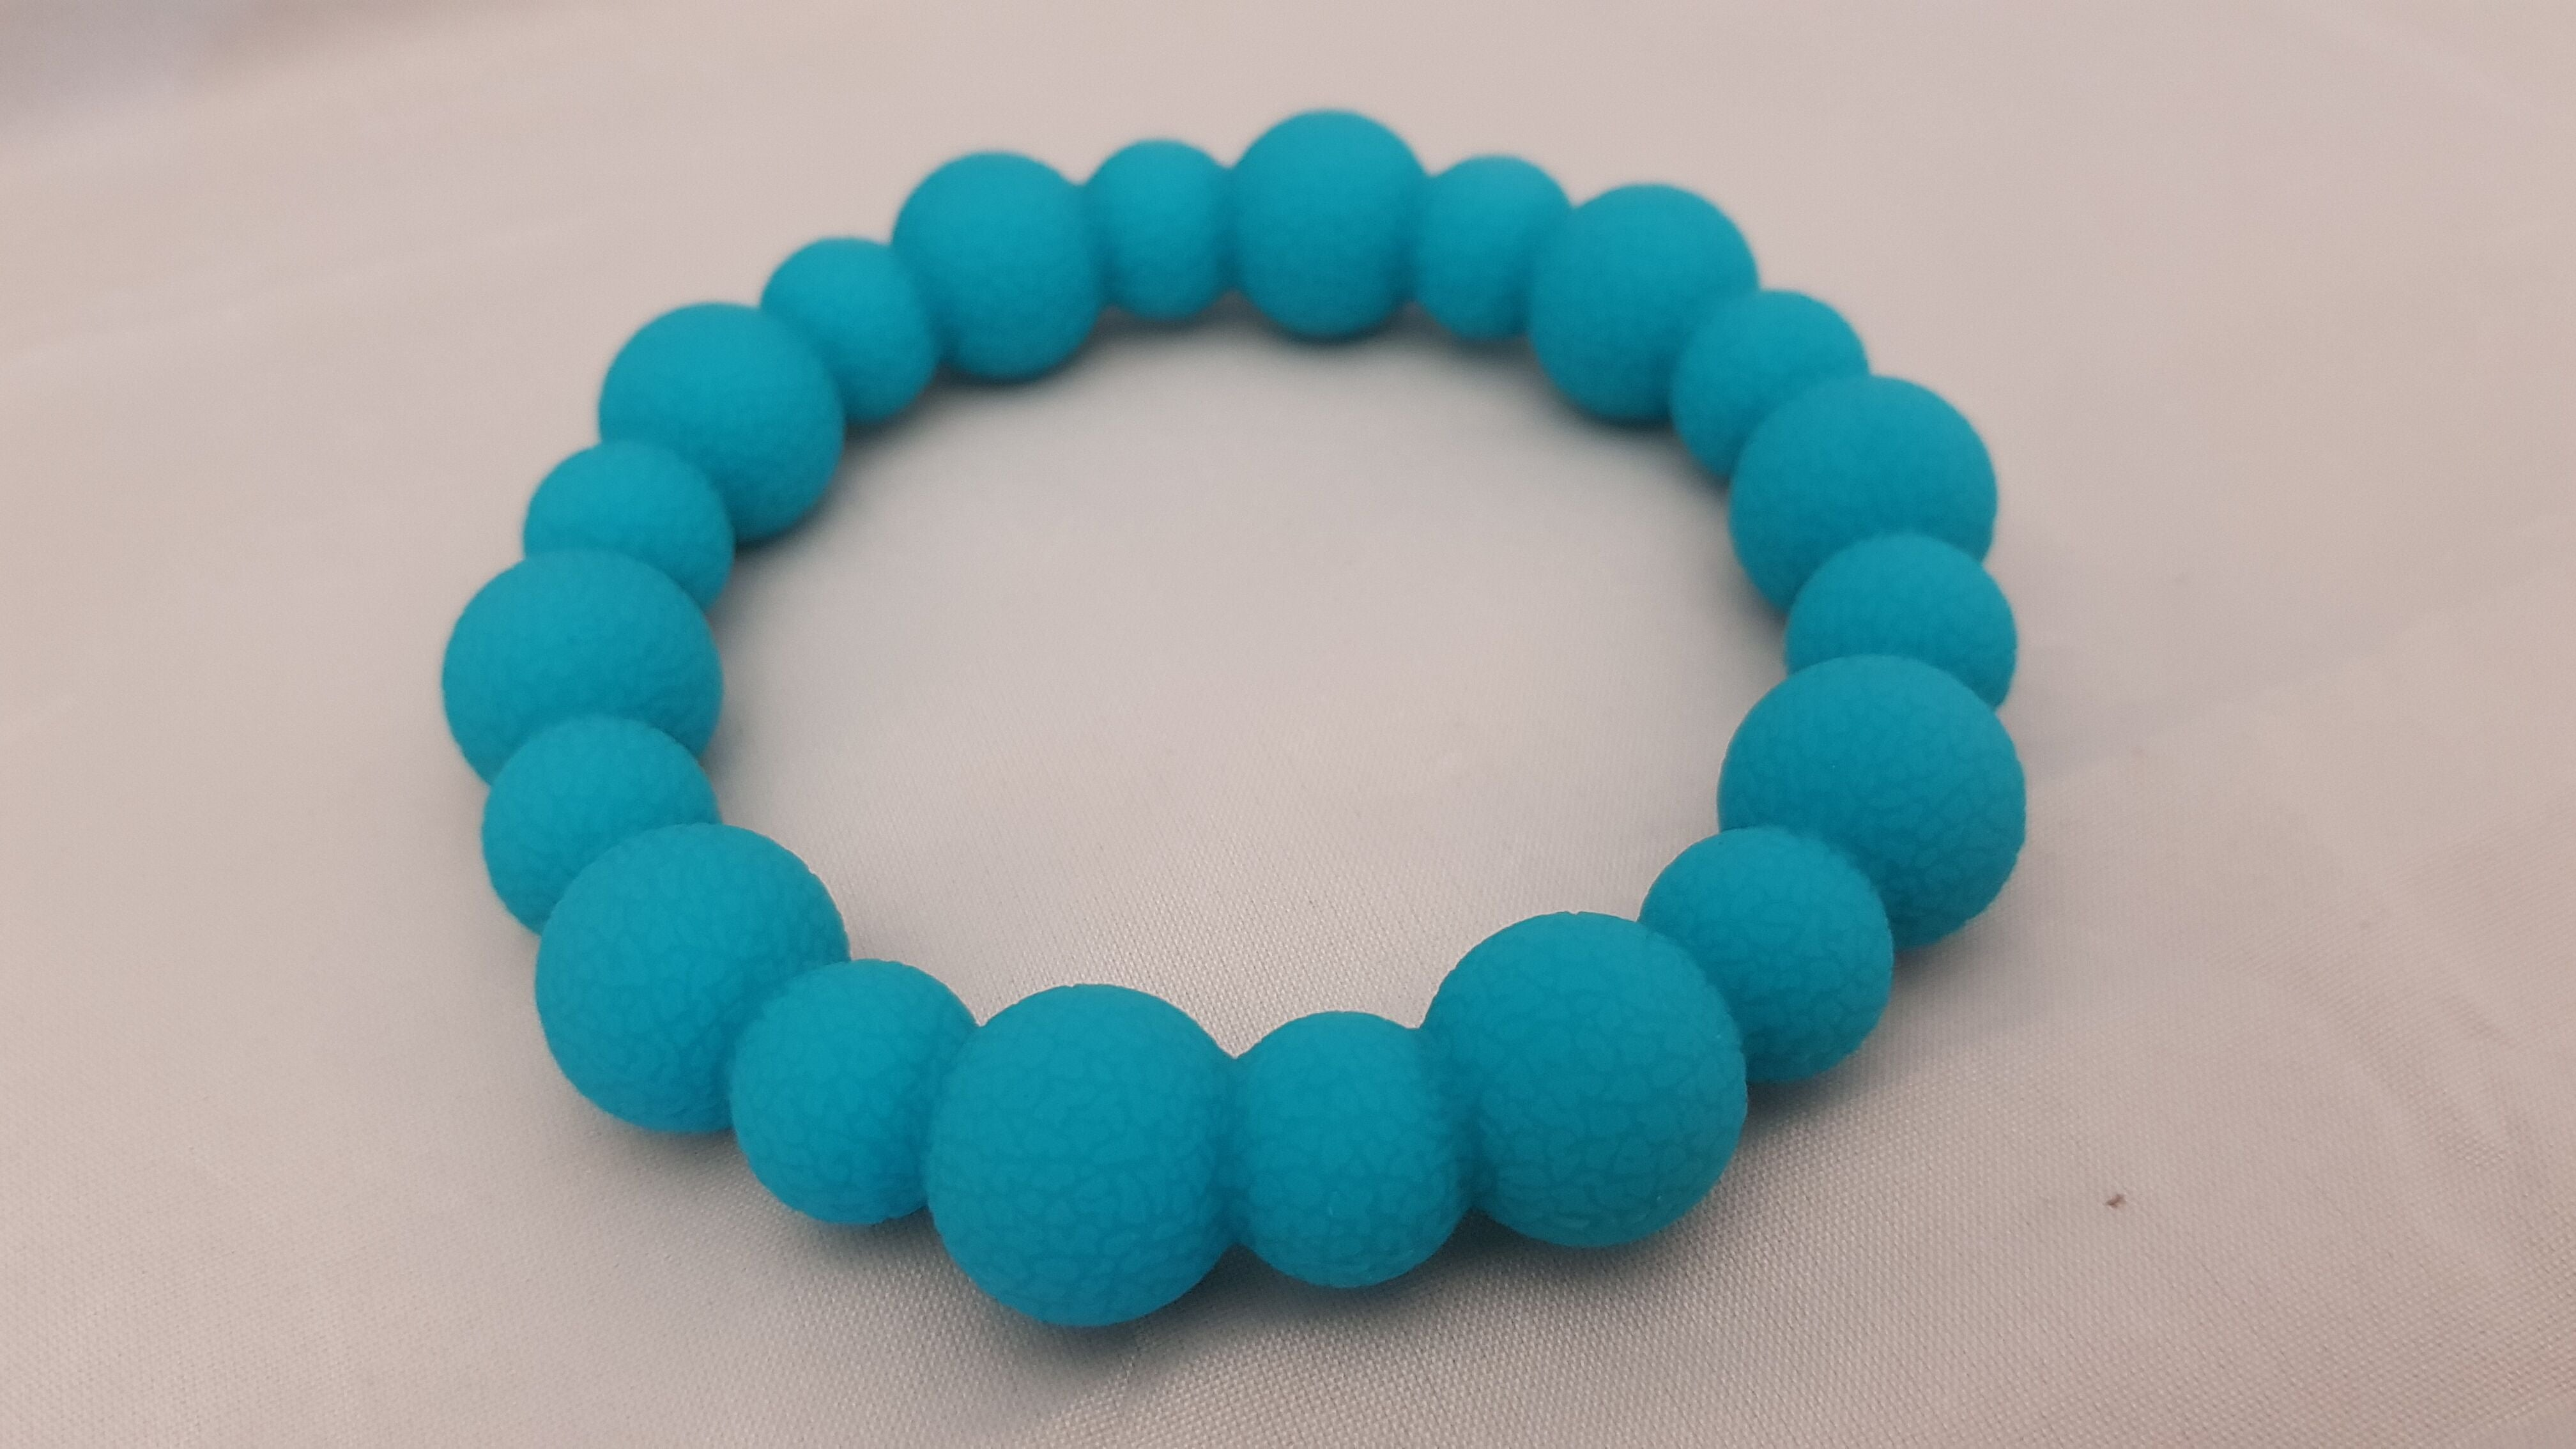 Chewigem Treads Bracelet - Bumpy Large Teal Image